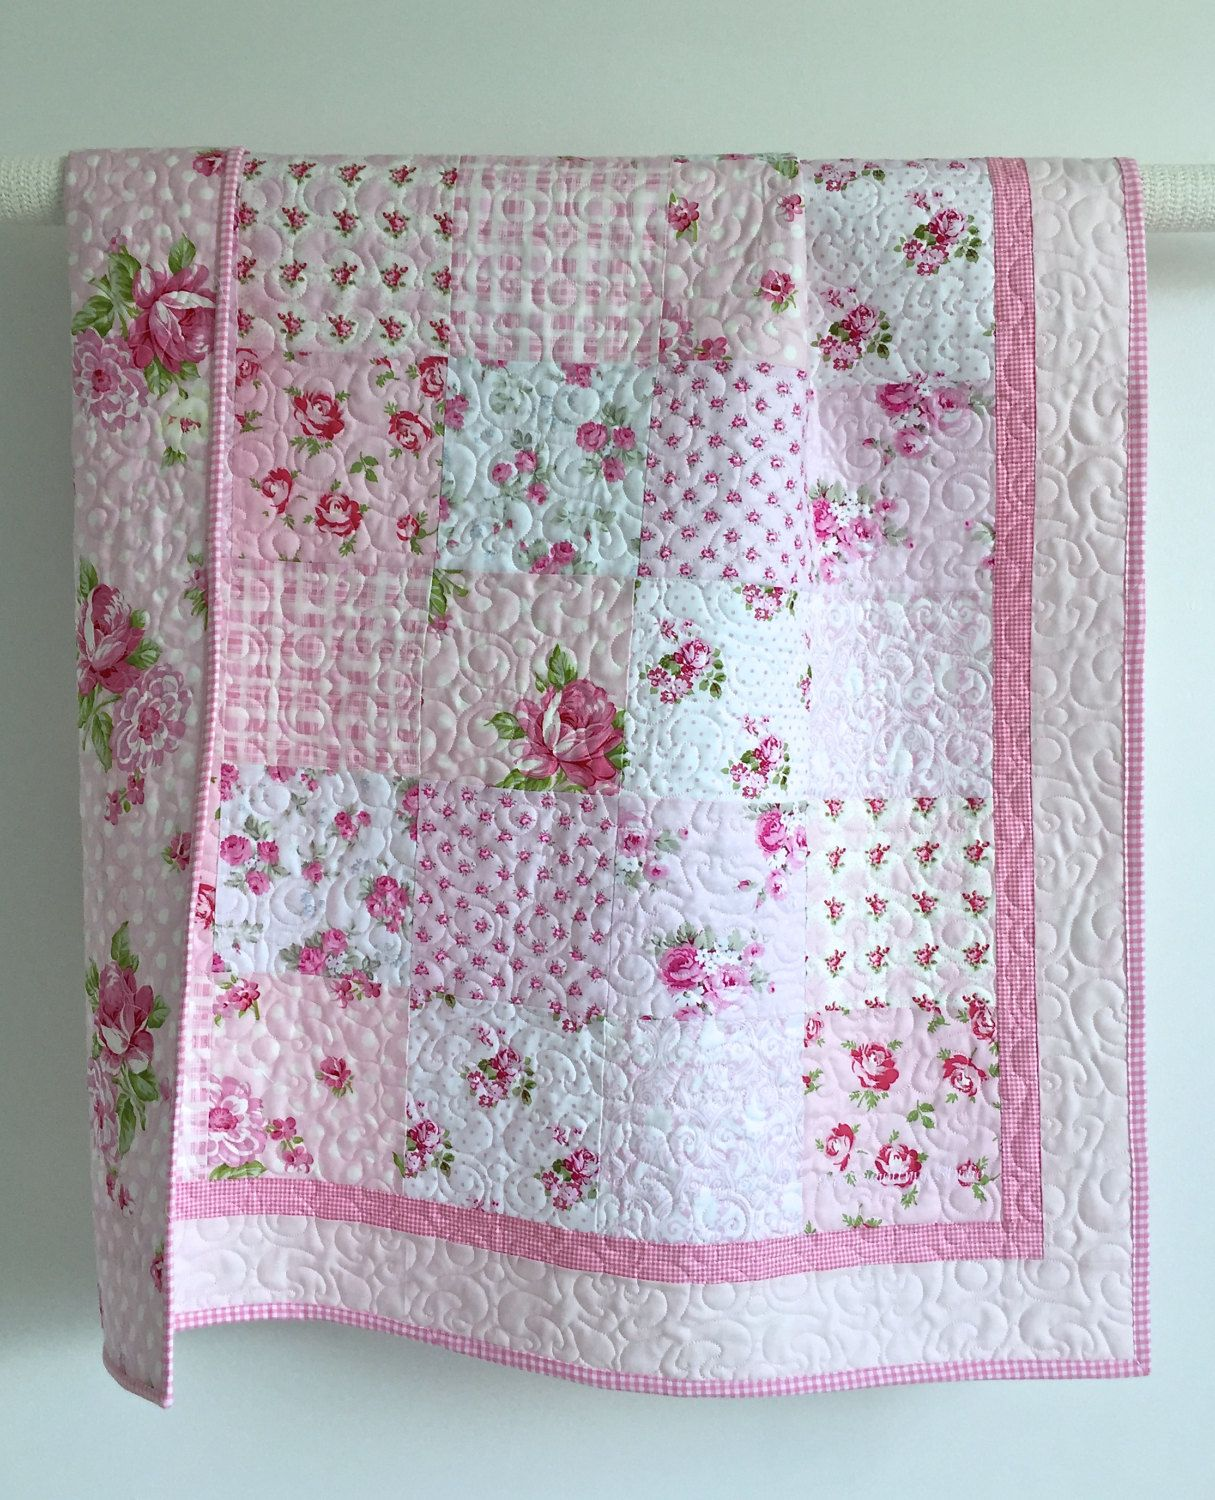 This Adorable Pink Baby Girl Quilt Is Made Of Soft Cotton Floral